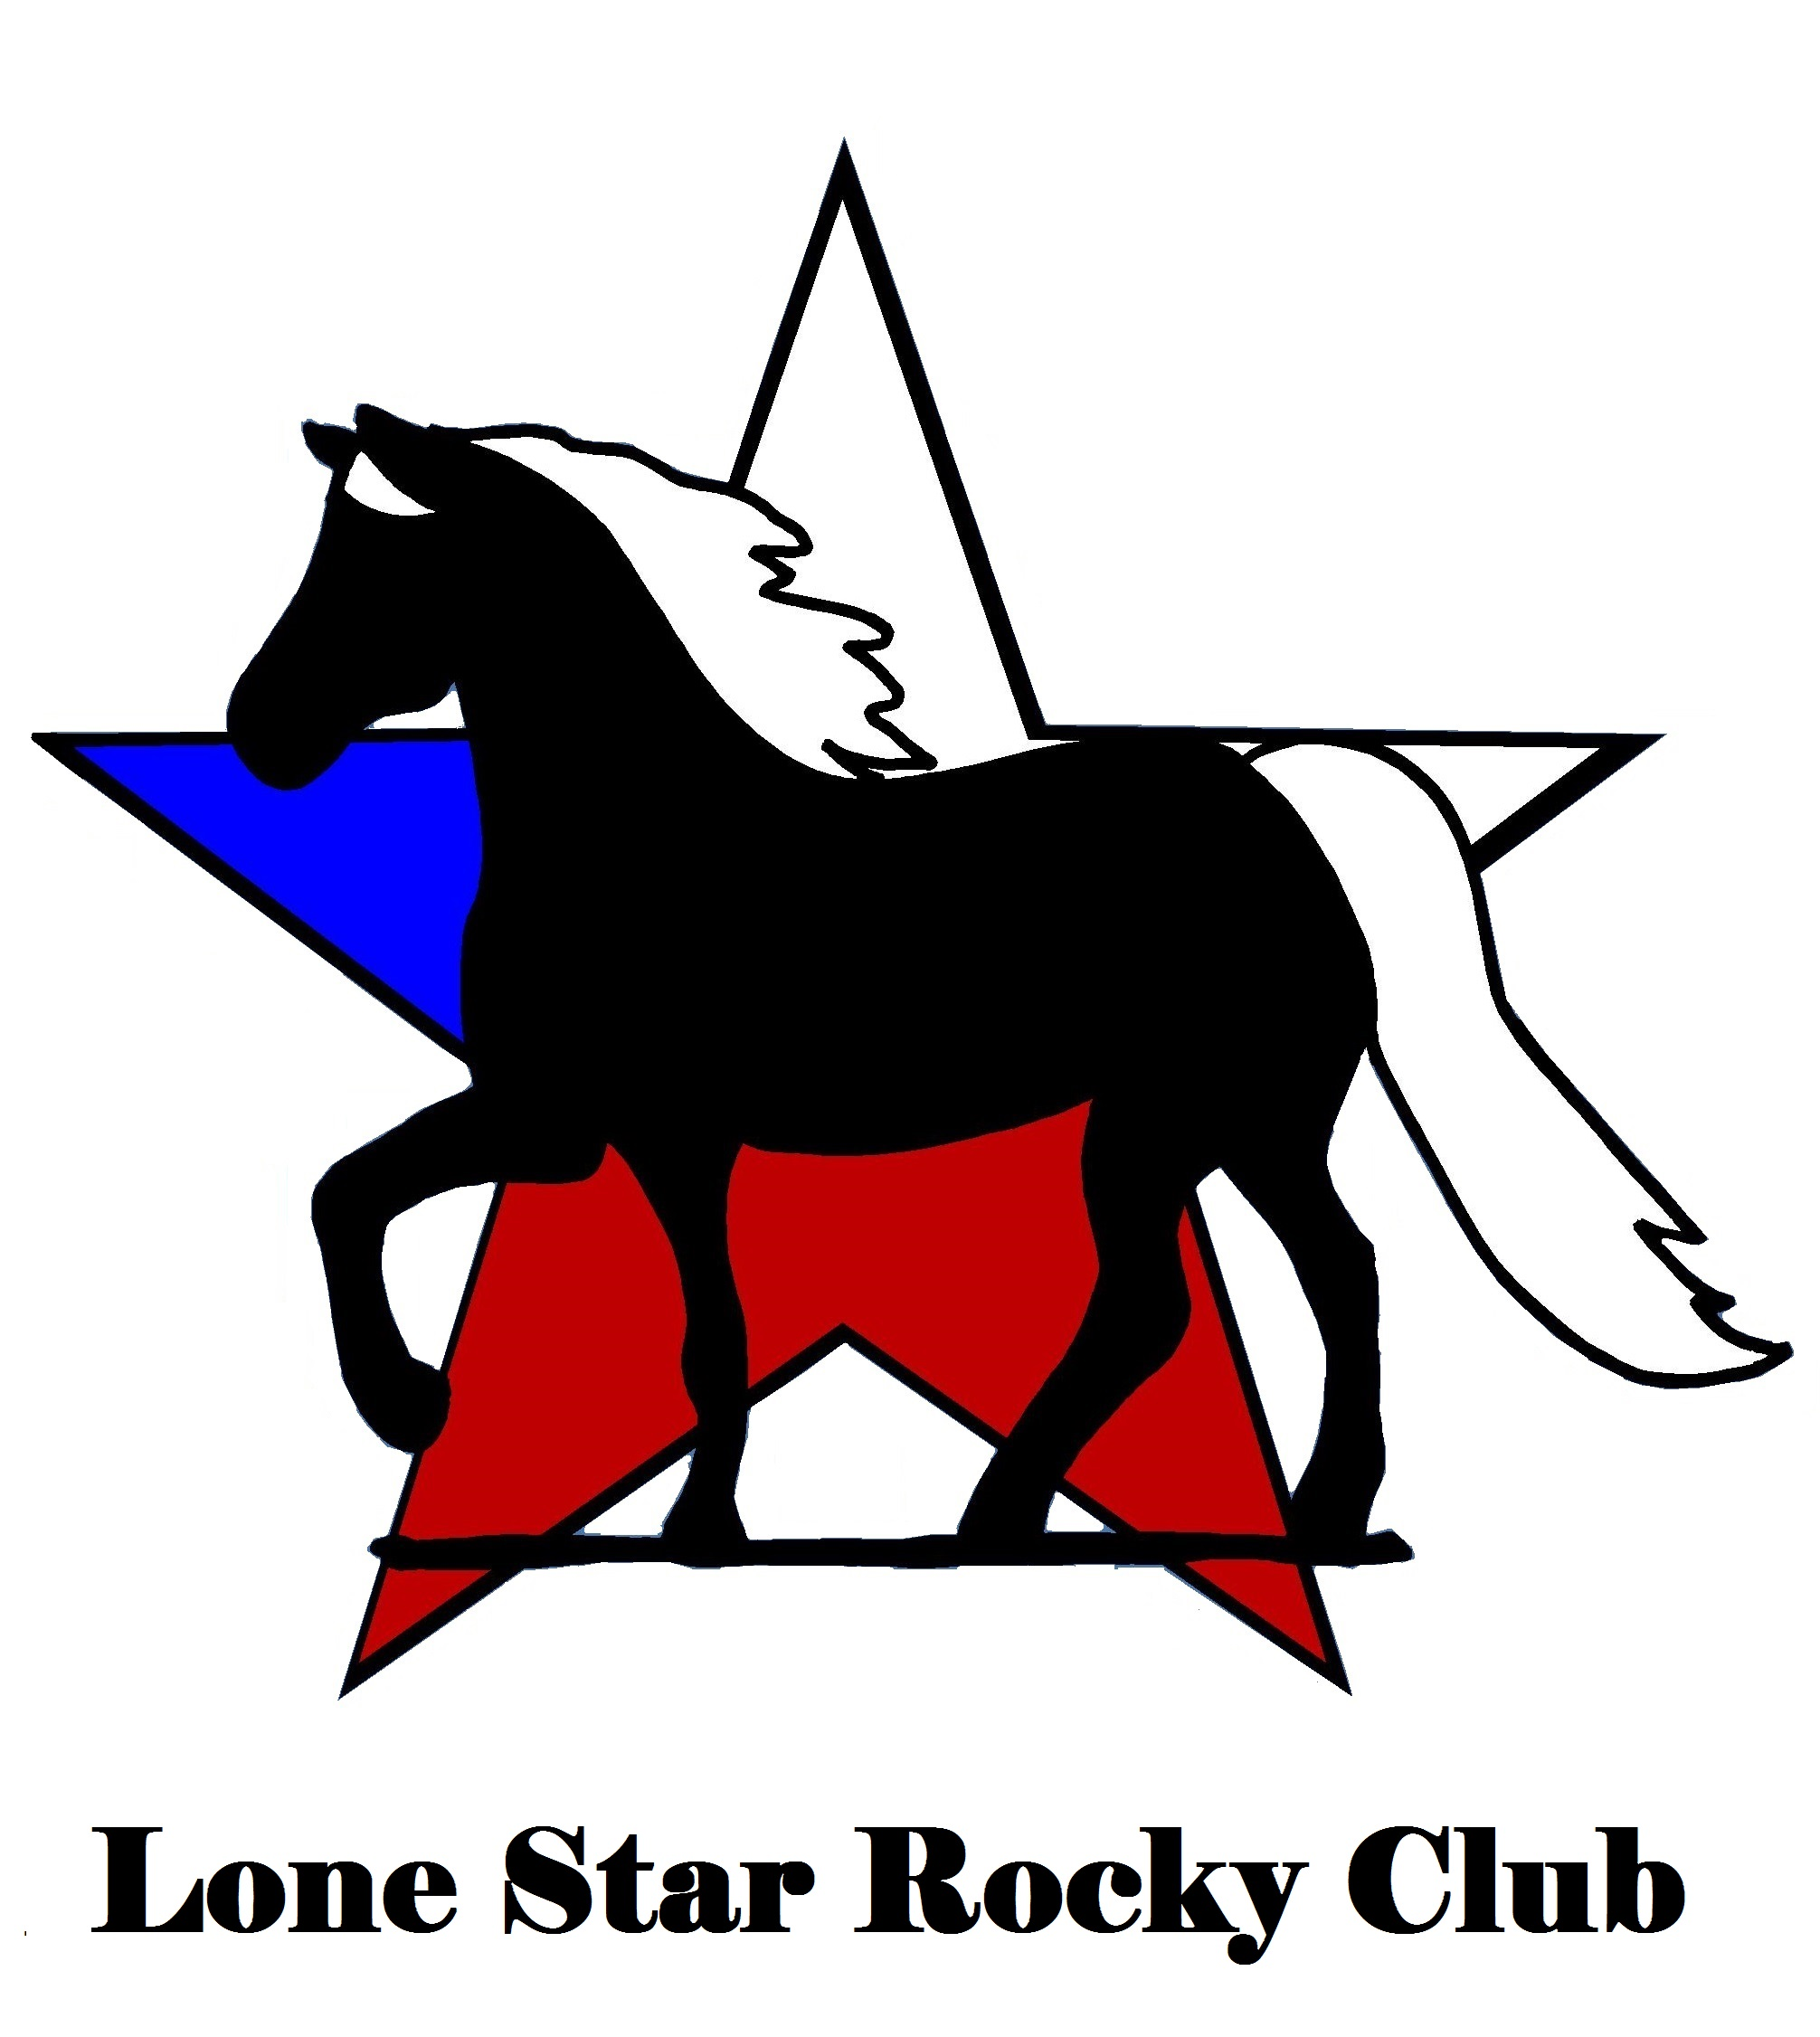 Lone Star Rocky Club Logo